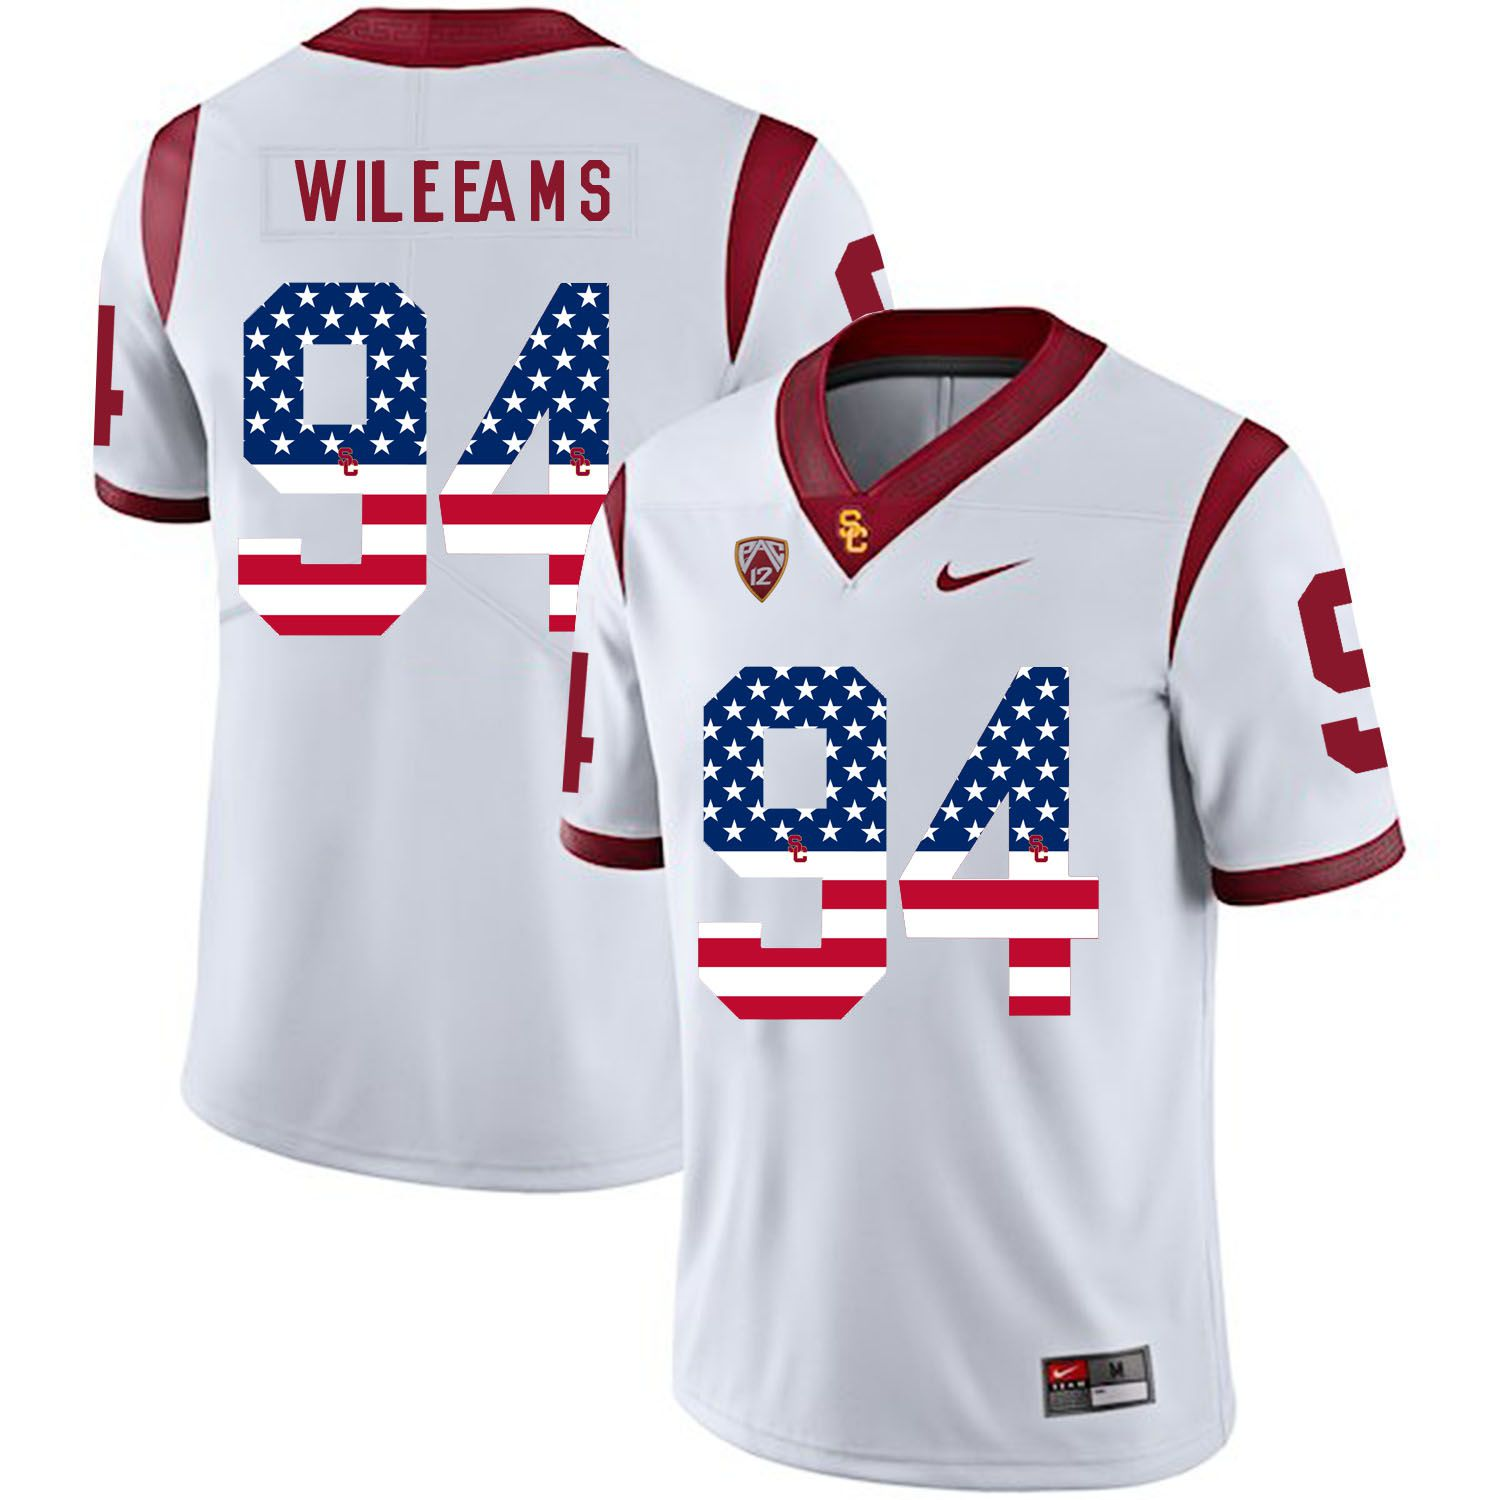 Men USC Trojans 94 Williams White Flag Customized NCAA Jerseys